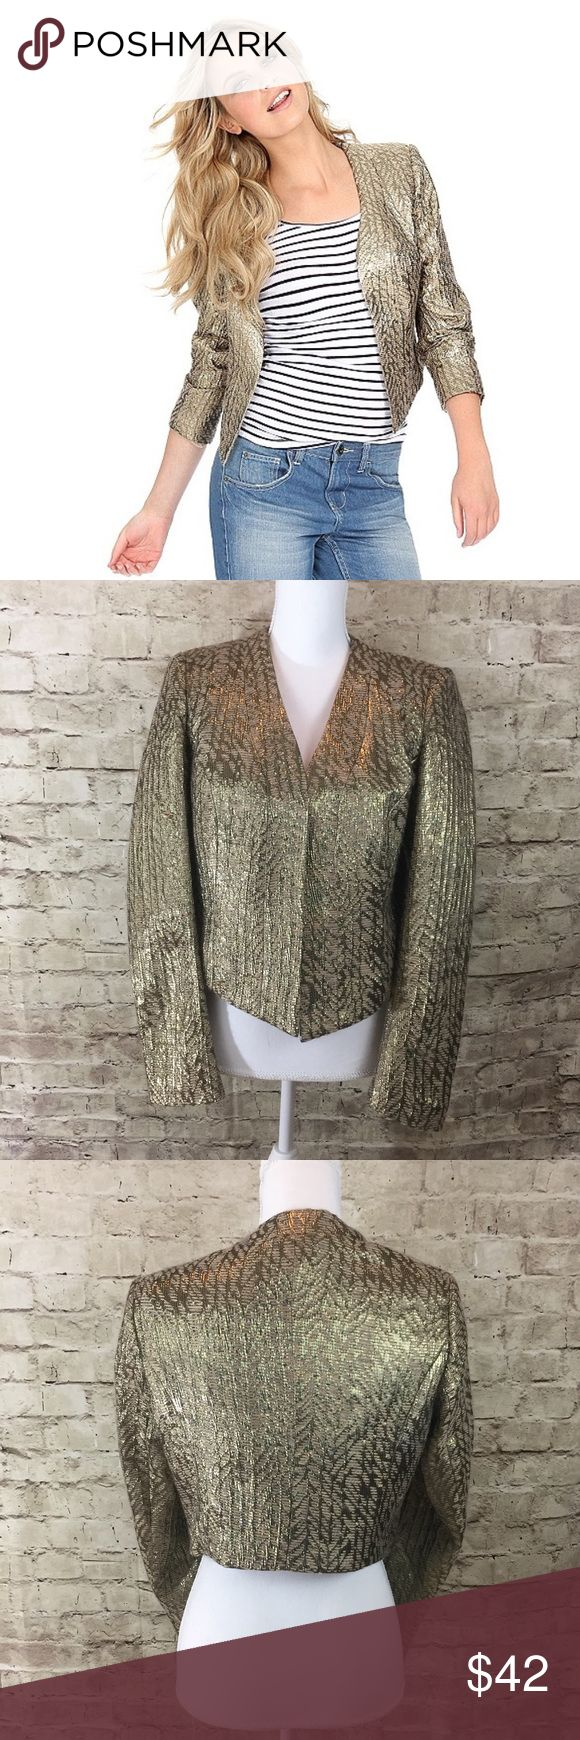 |French Connection| Metallic Cropped Jacket Gold metallic cropped jacket with asymmetrical front • in excellent preowned condition no flaws noted• fully lined French Connection Jackets & Coats Blazers